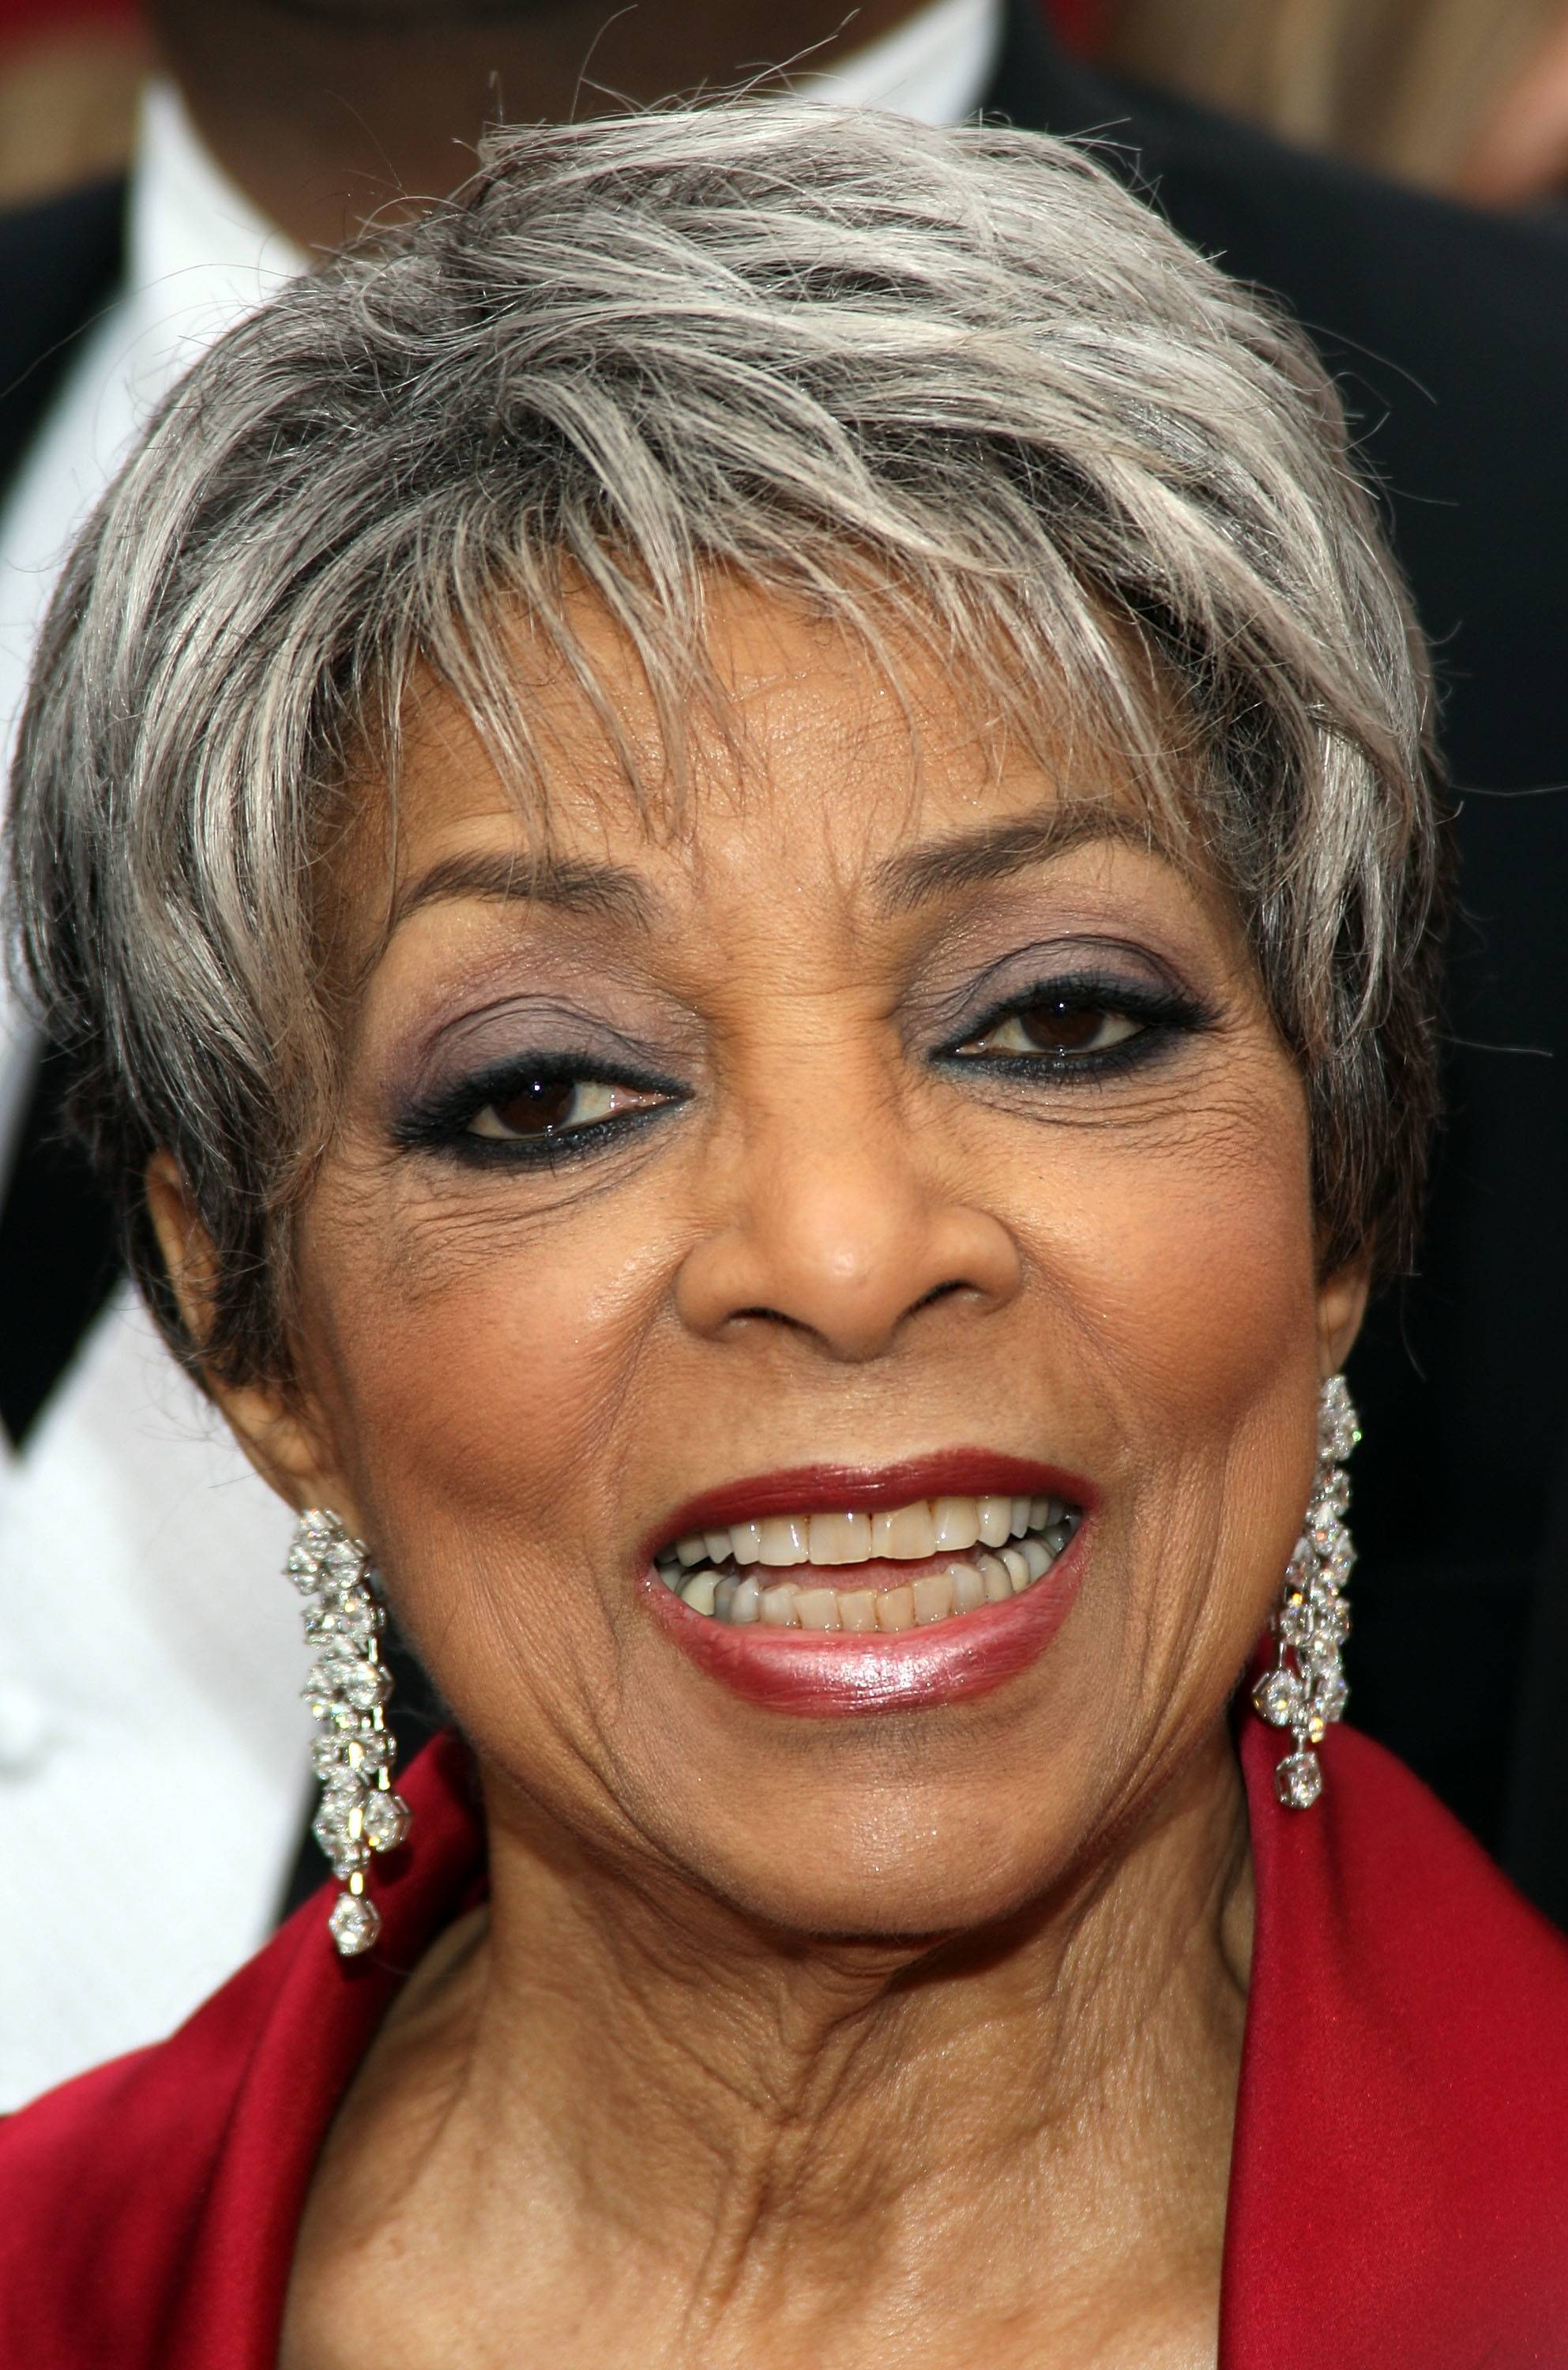 HOLLYWOOD - FEBRUARY 24:  Actress Ruby Dee arrives at the 80th Annual Academy Awards held at the Kodak Theatre on February 24, 2008 in Hollywood, California.  (Photo by Frederick M. Brown/Getty Images)